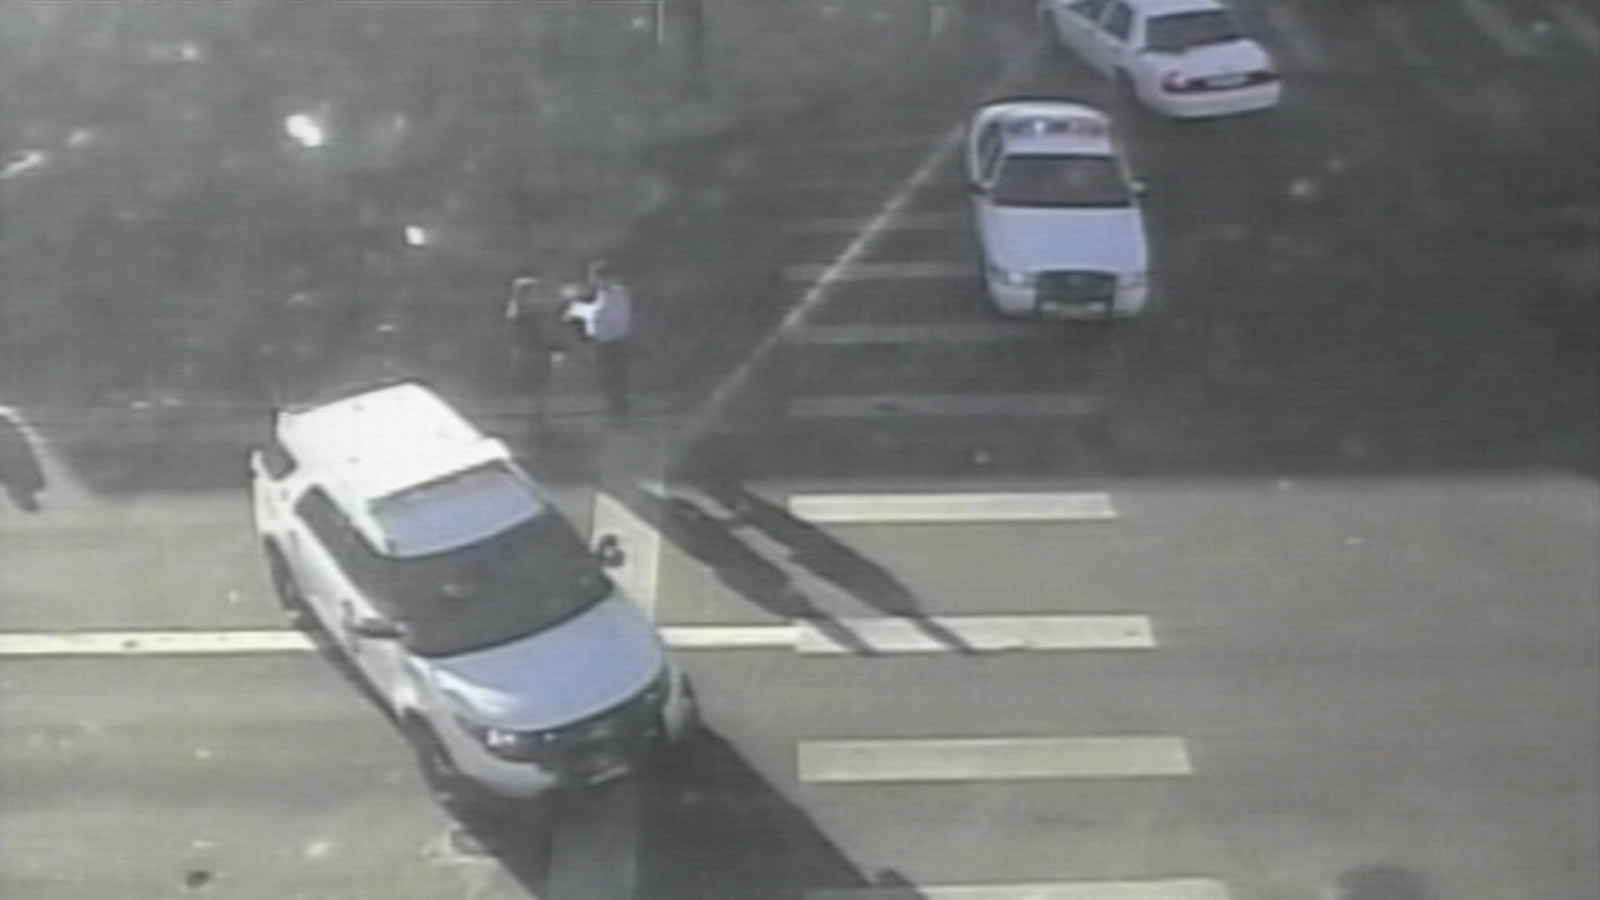 Police in Denver investigate a hit & run at 38th and Federal (credit: CBS)